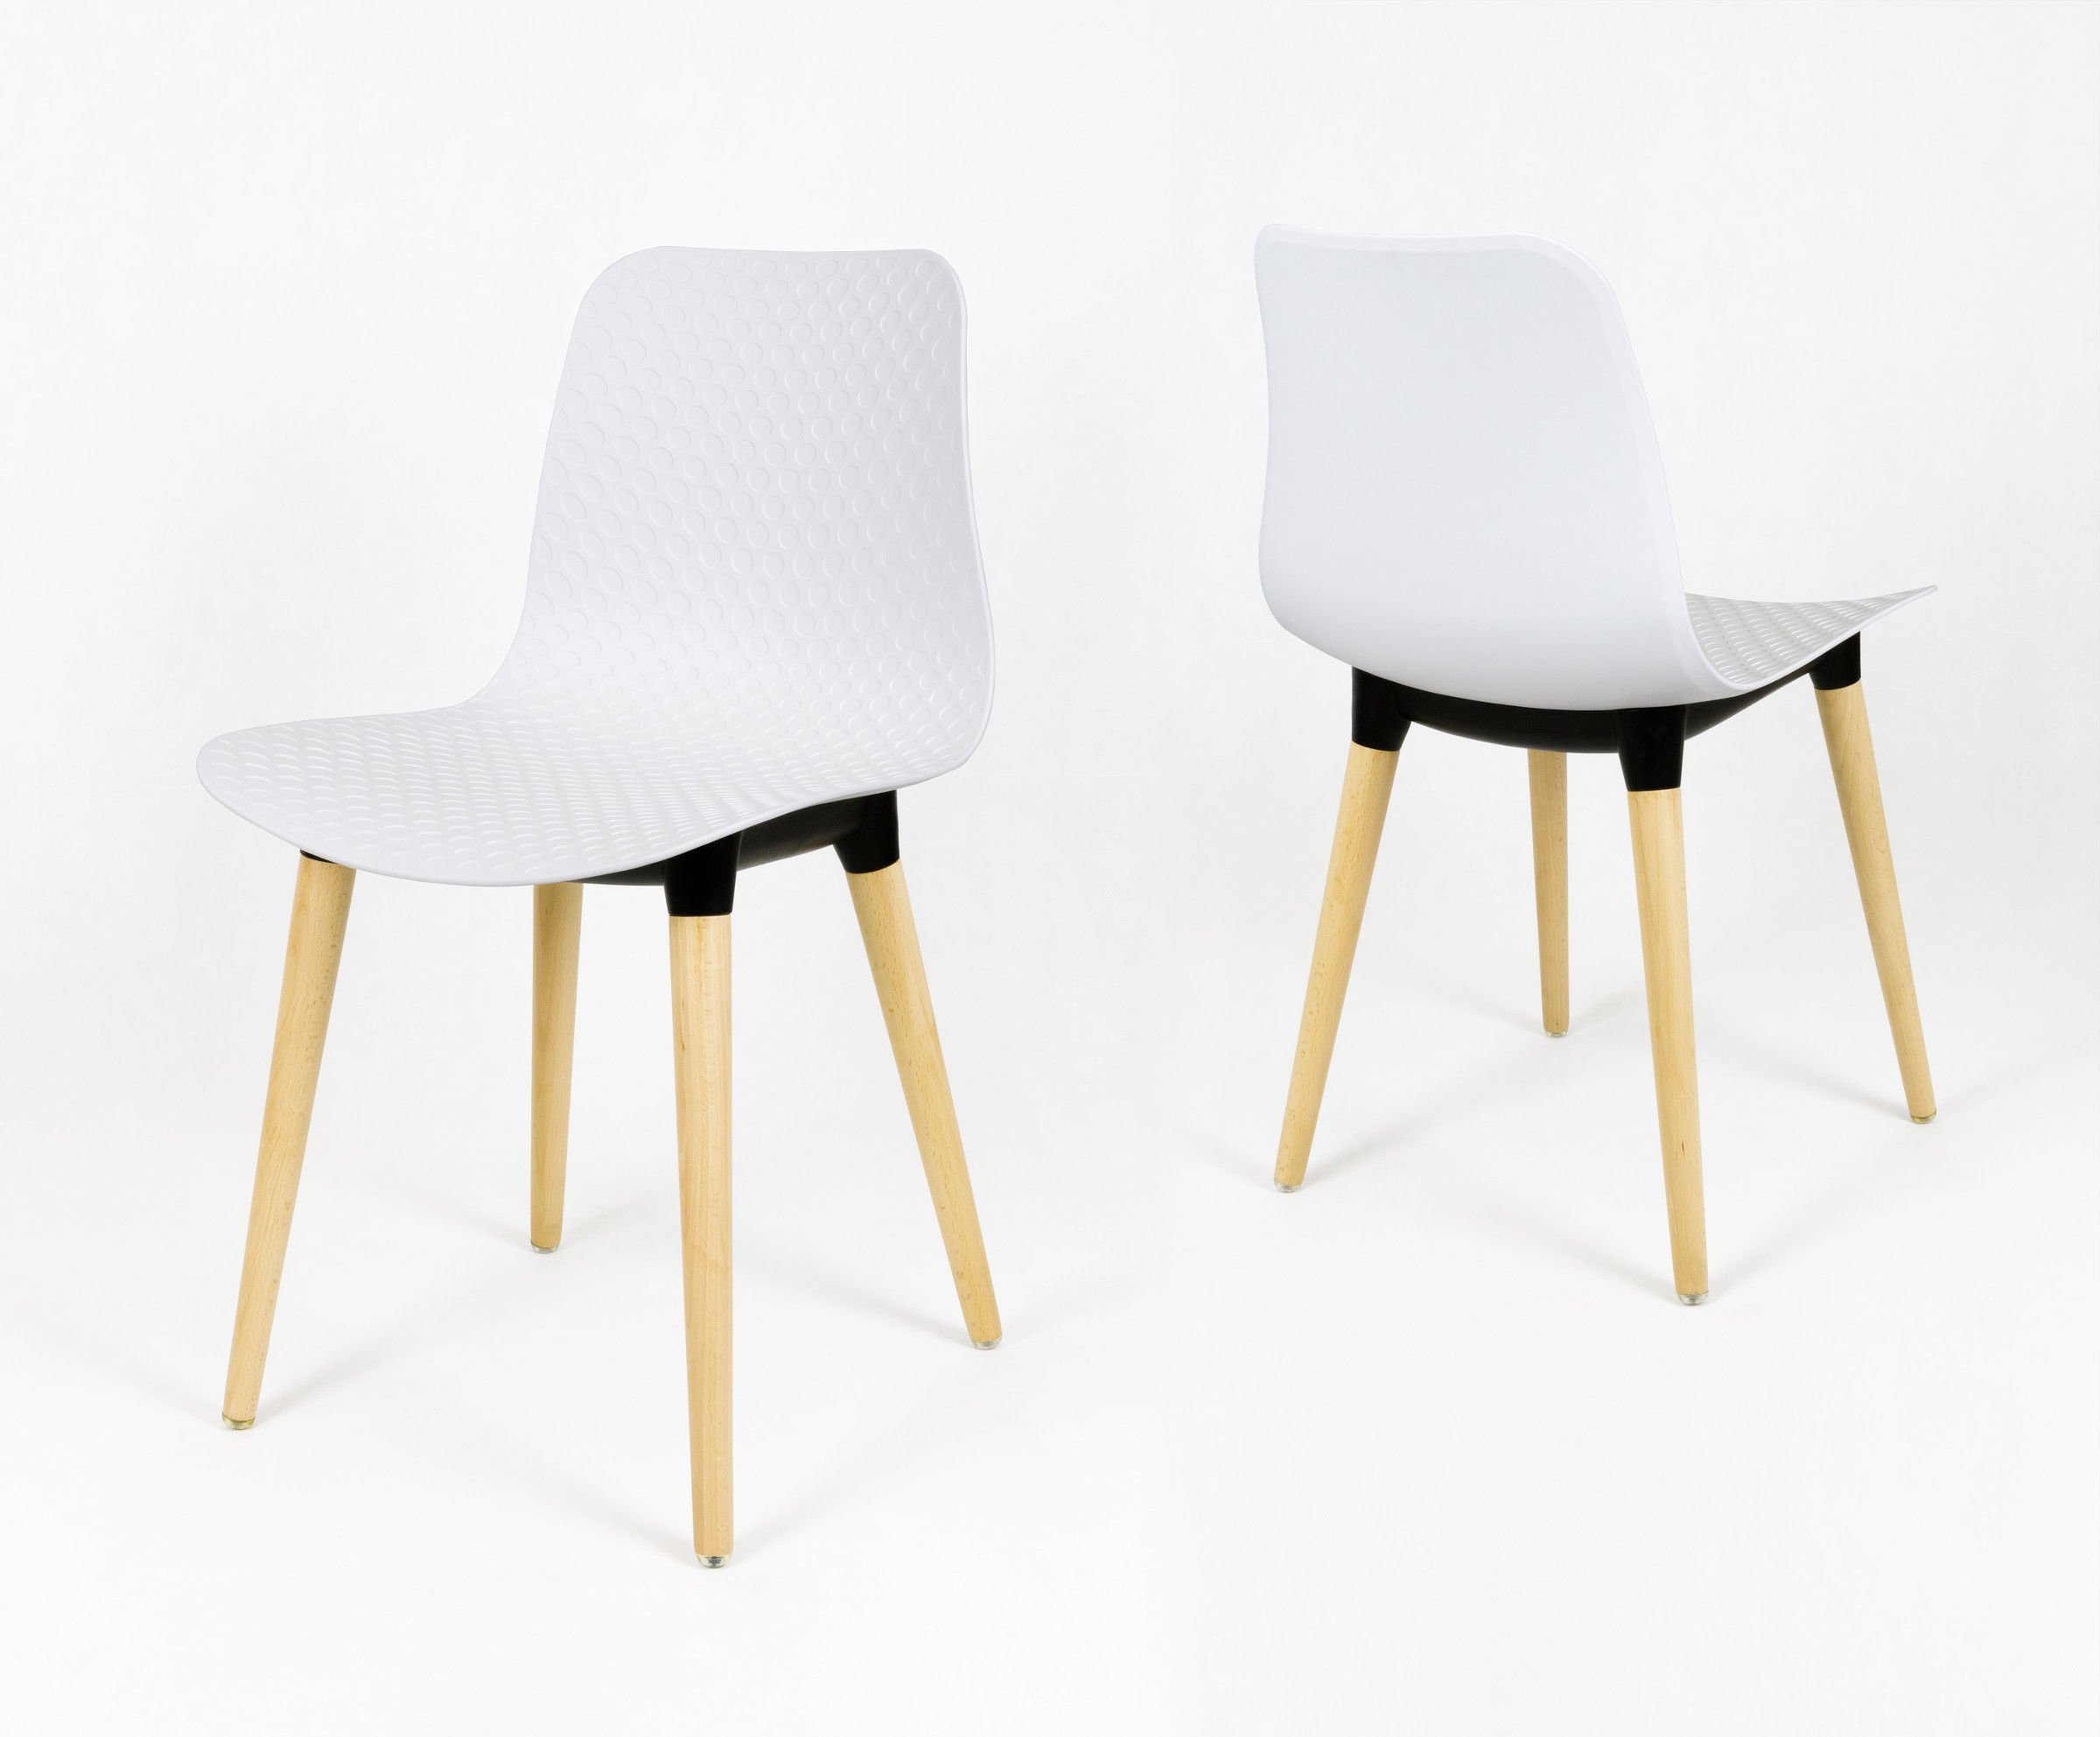 Sk design kr060 white chair click to zoom